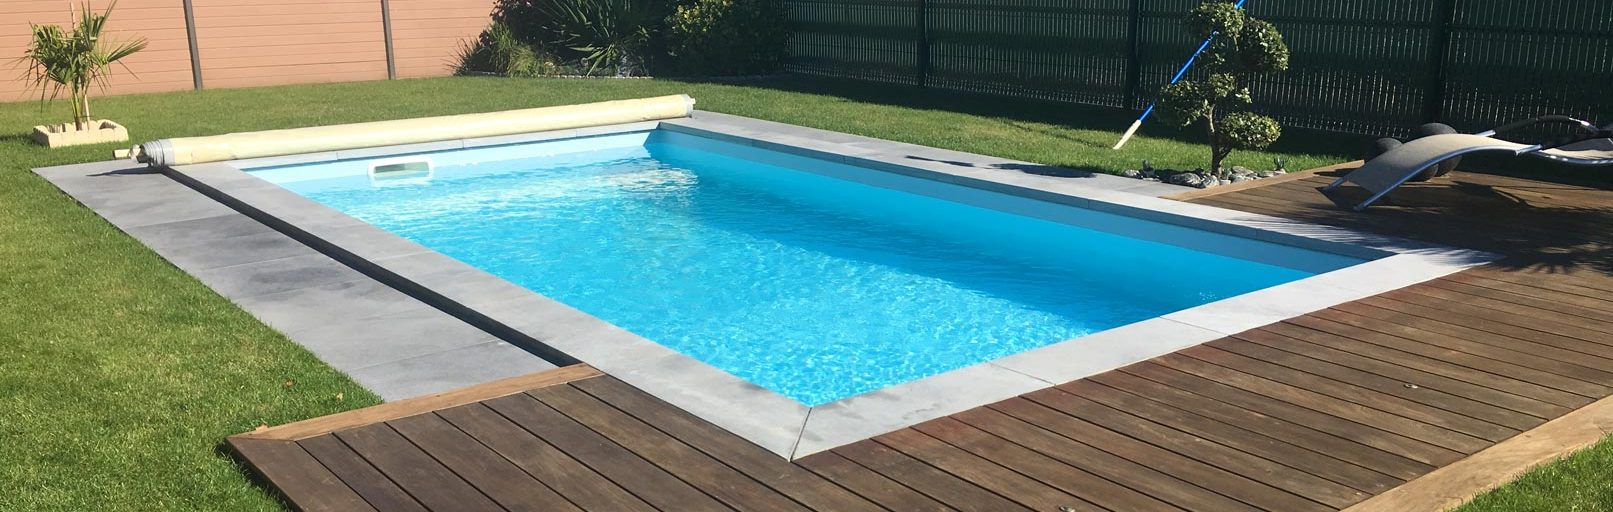 Couverture barres de s curit pour piscine disponible au - Couverture securite piscine ...